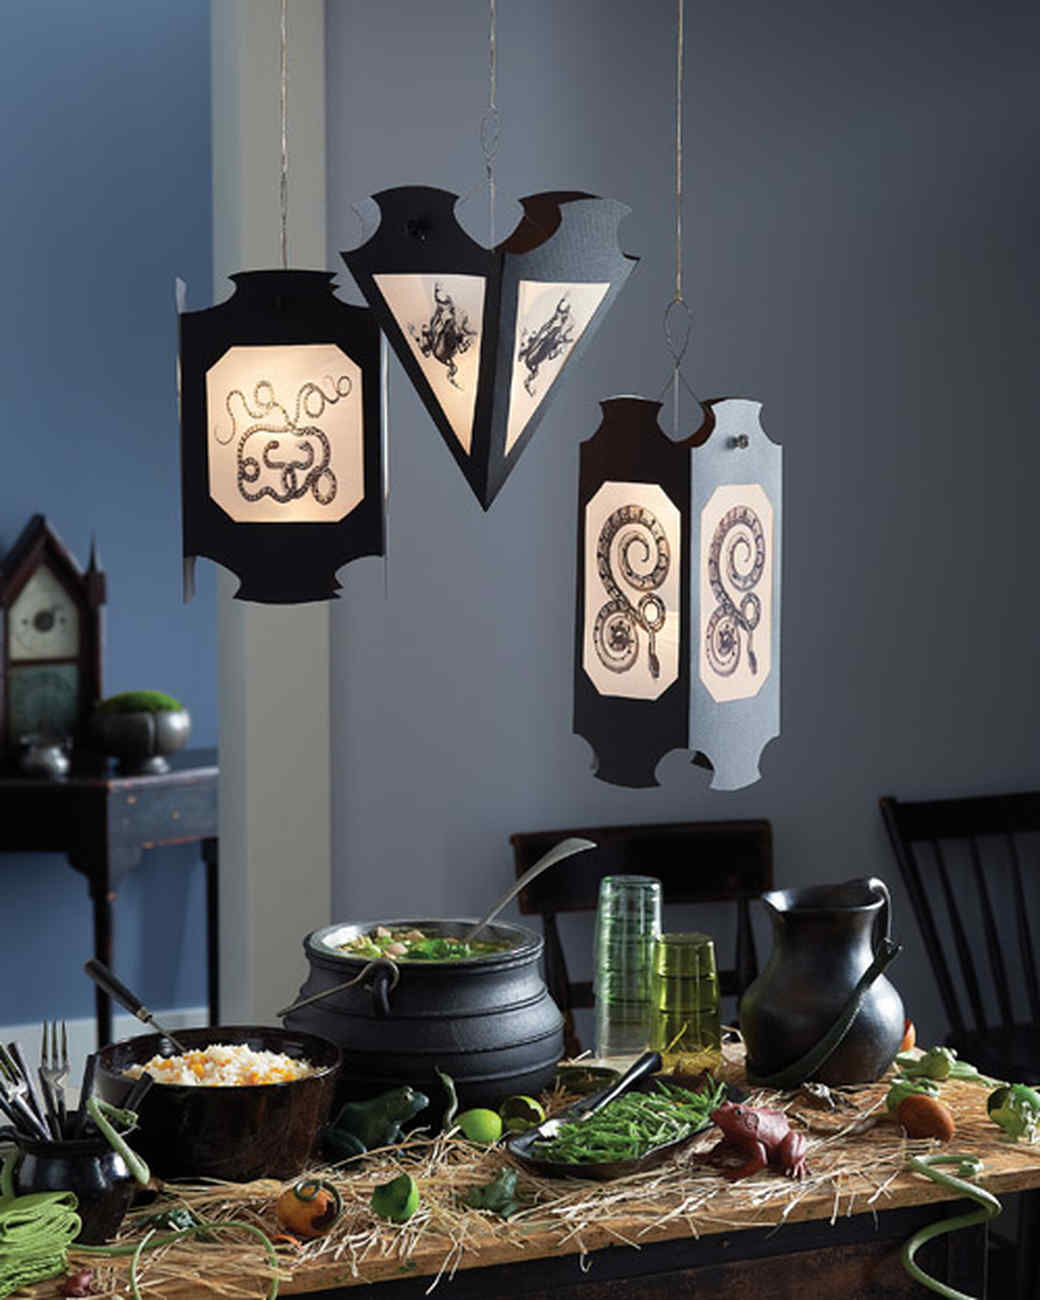 Majestic Crafts Decorating Style S Arts Templates Decorating Your Room Crafts Frog Vellum Lanterns Clip Art Hanging Snake Halloween Decorations Martha Stewart Arts home decor Arts And Craft Decorating